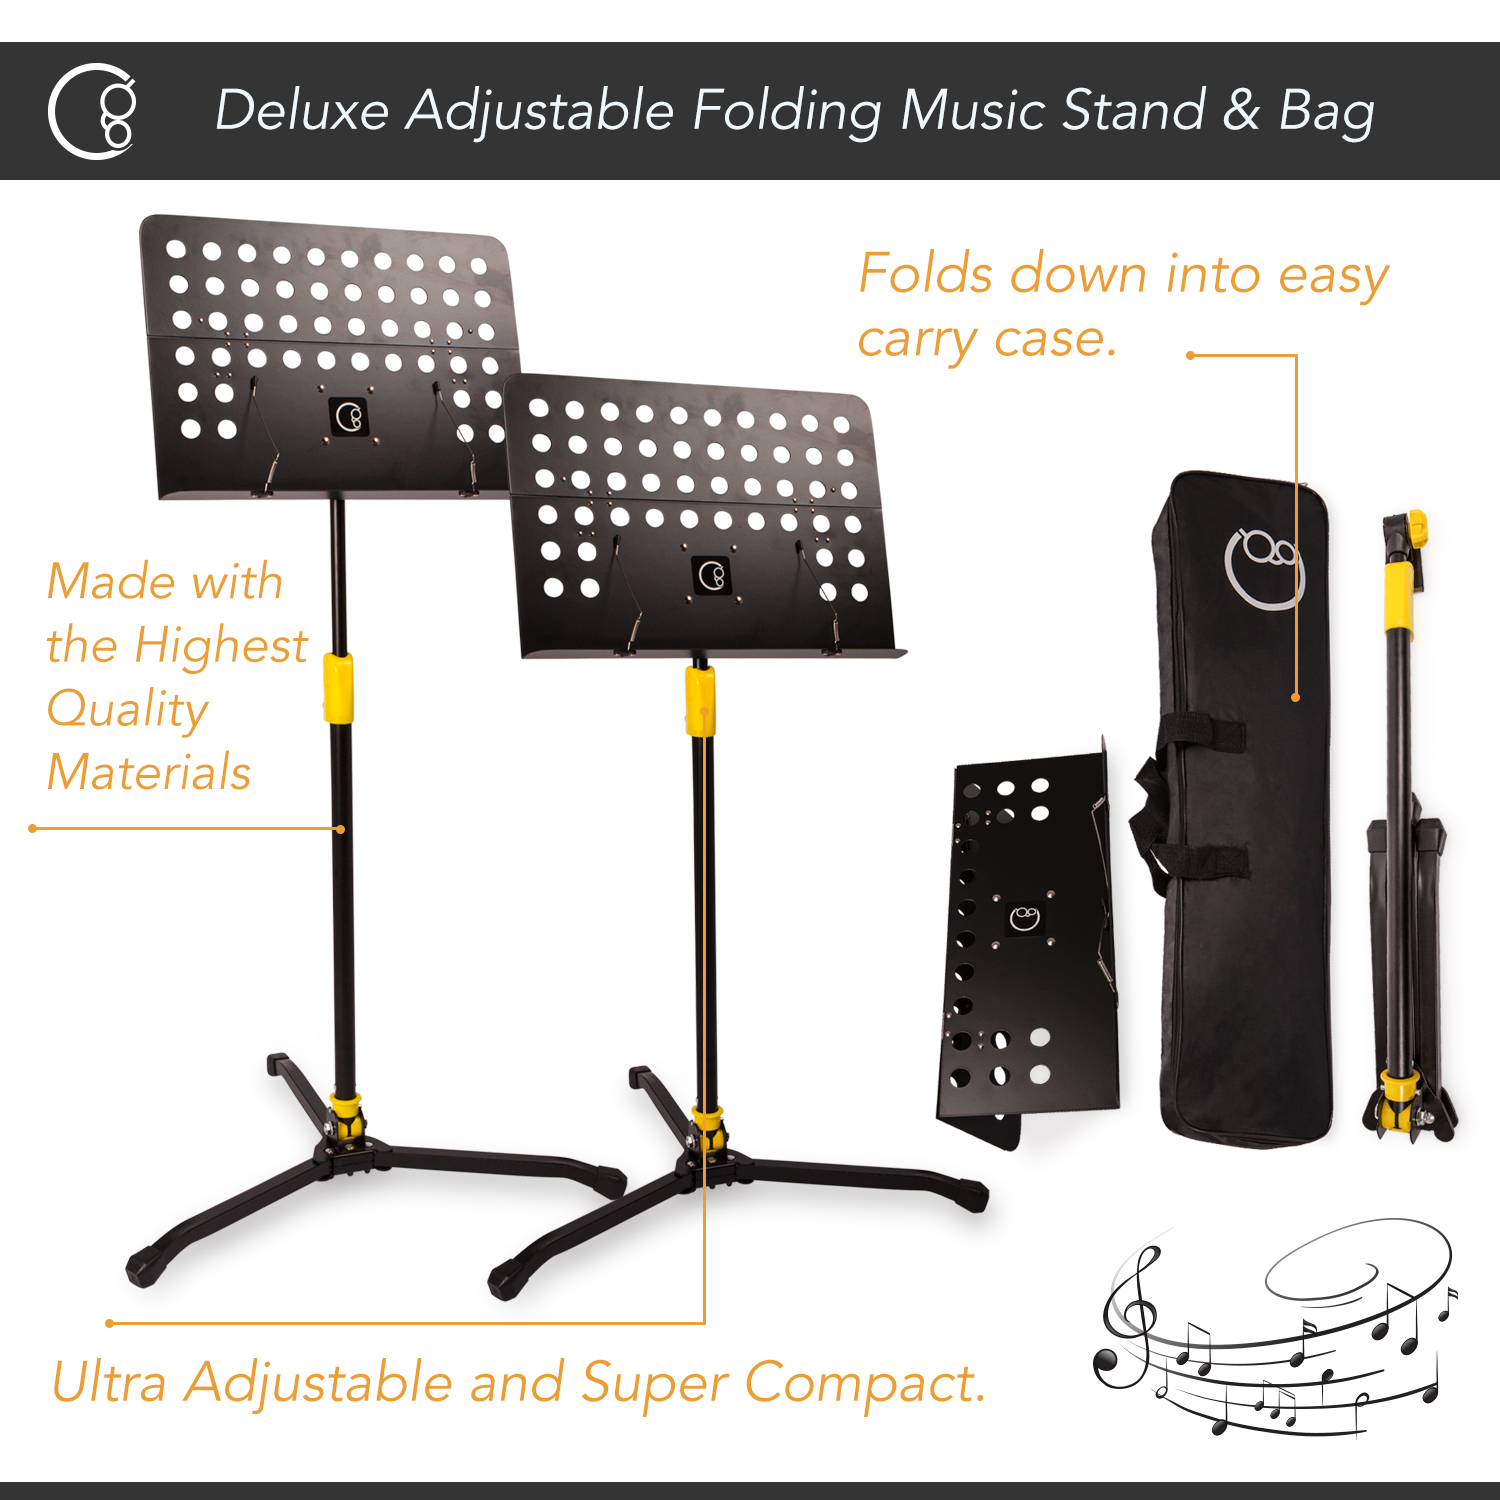 Deluxe Adjustable Folding Music Stand with Carrying Bag (Black)